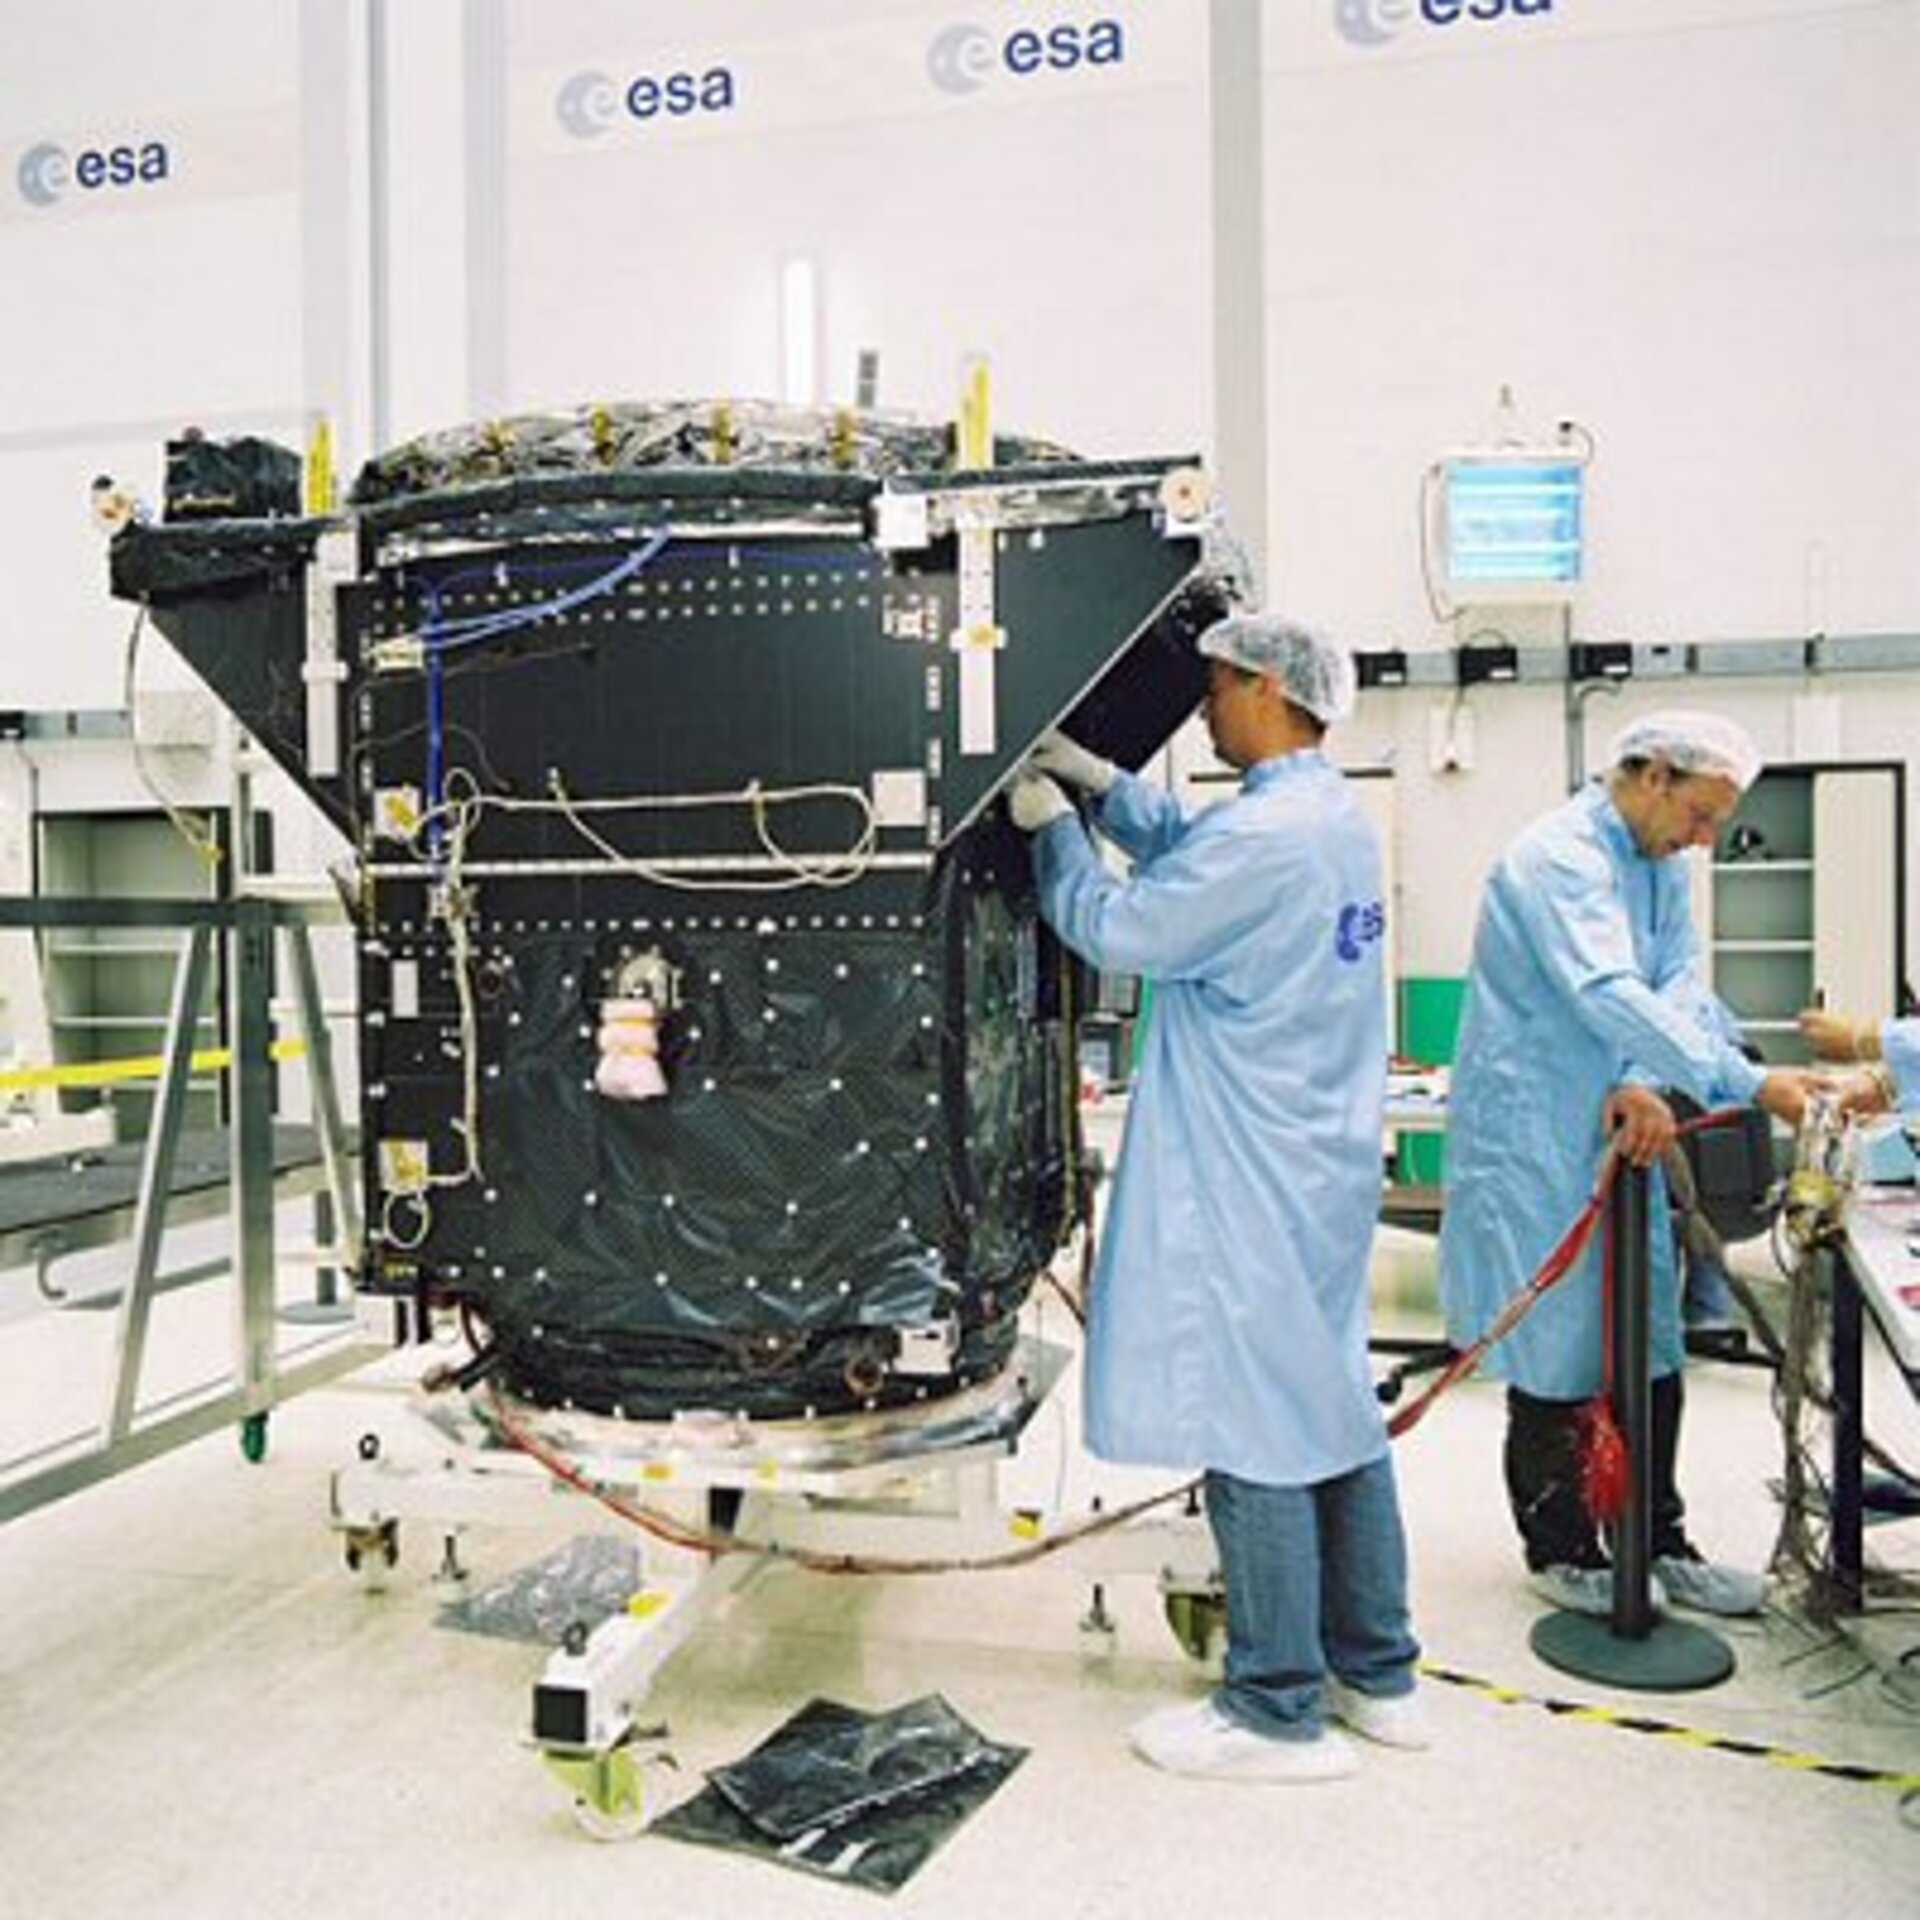 GSTB-V2/A being prepared for testing